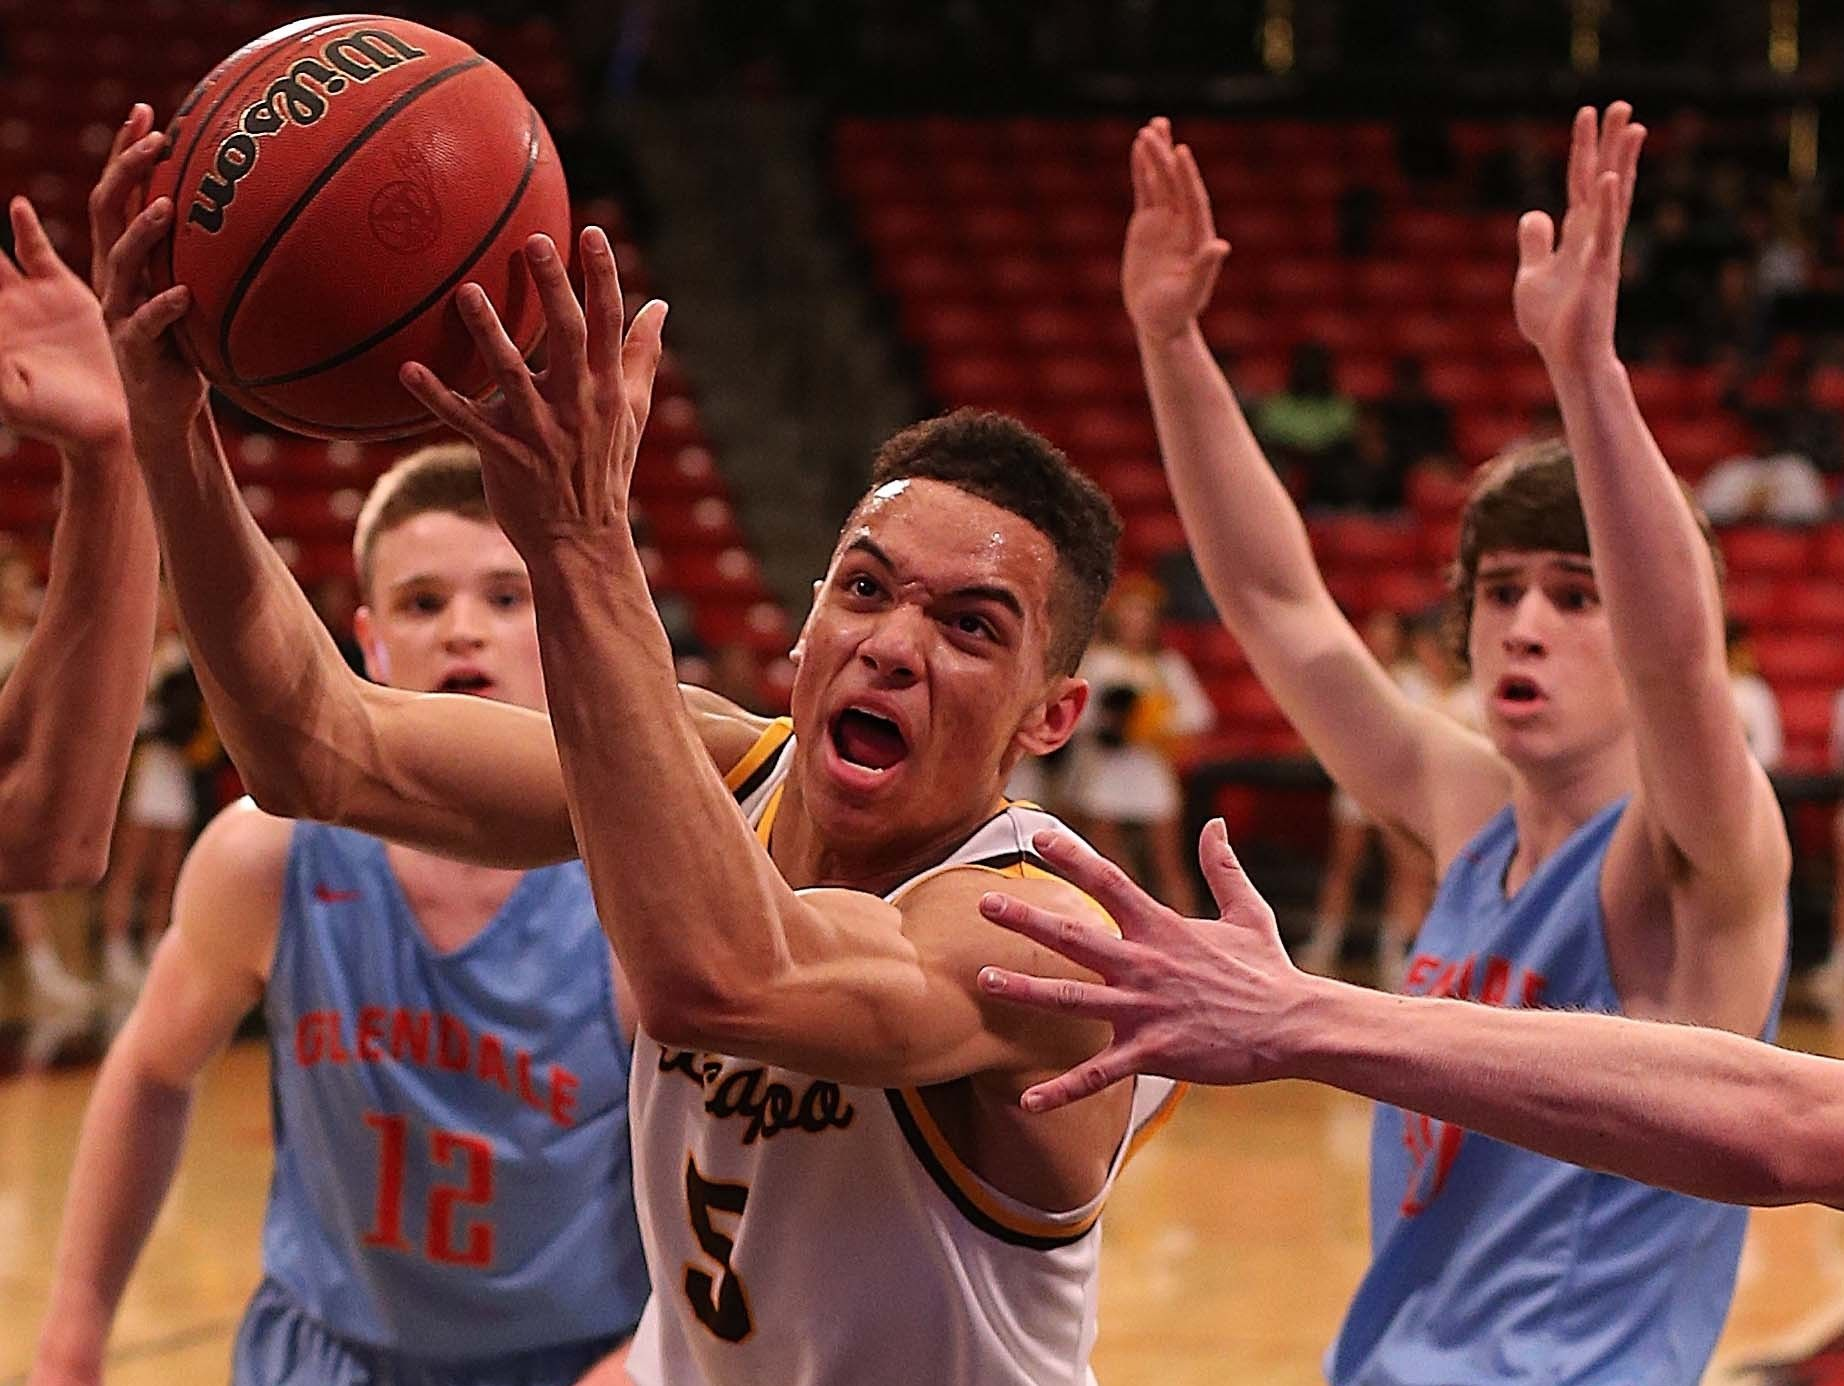 Kickapoo's Cameron Davis (center) announced his commitment to play basketball at Navy on Sept. 12, 2016.